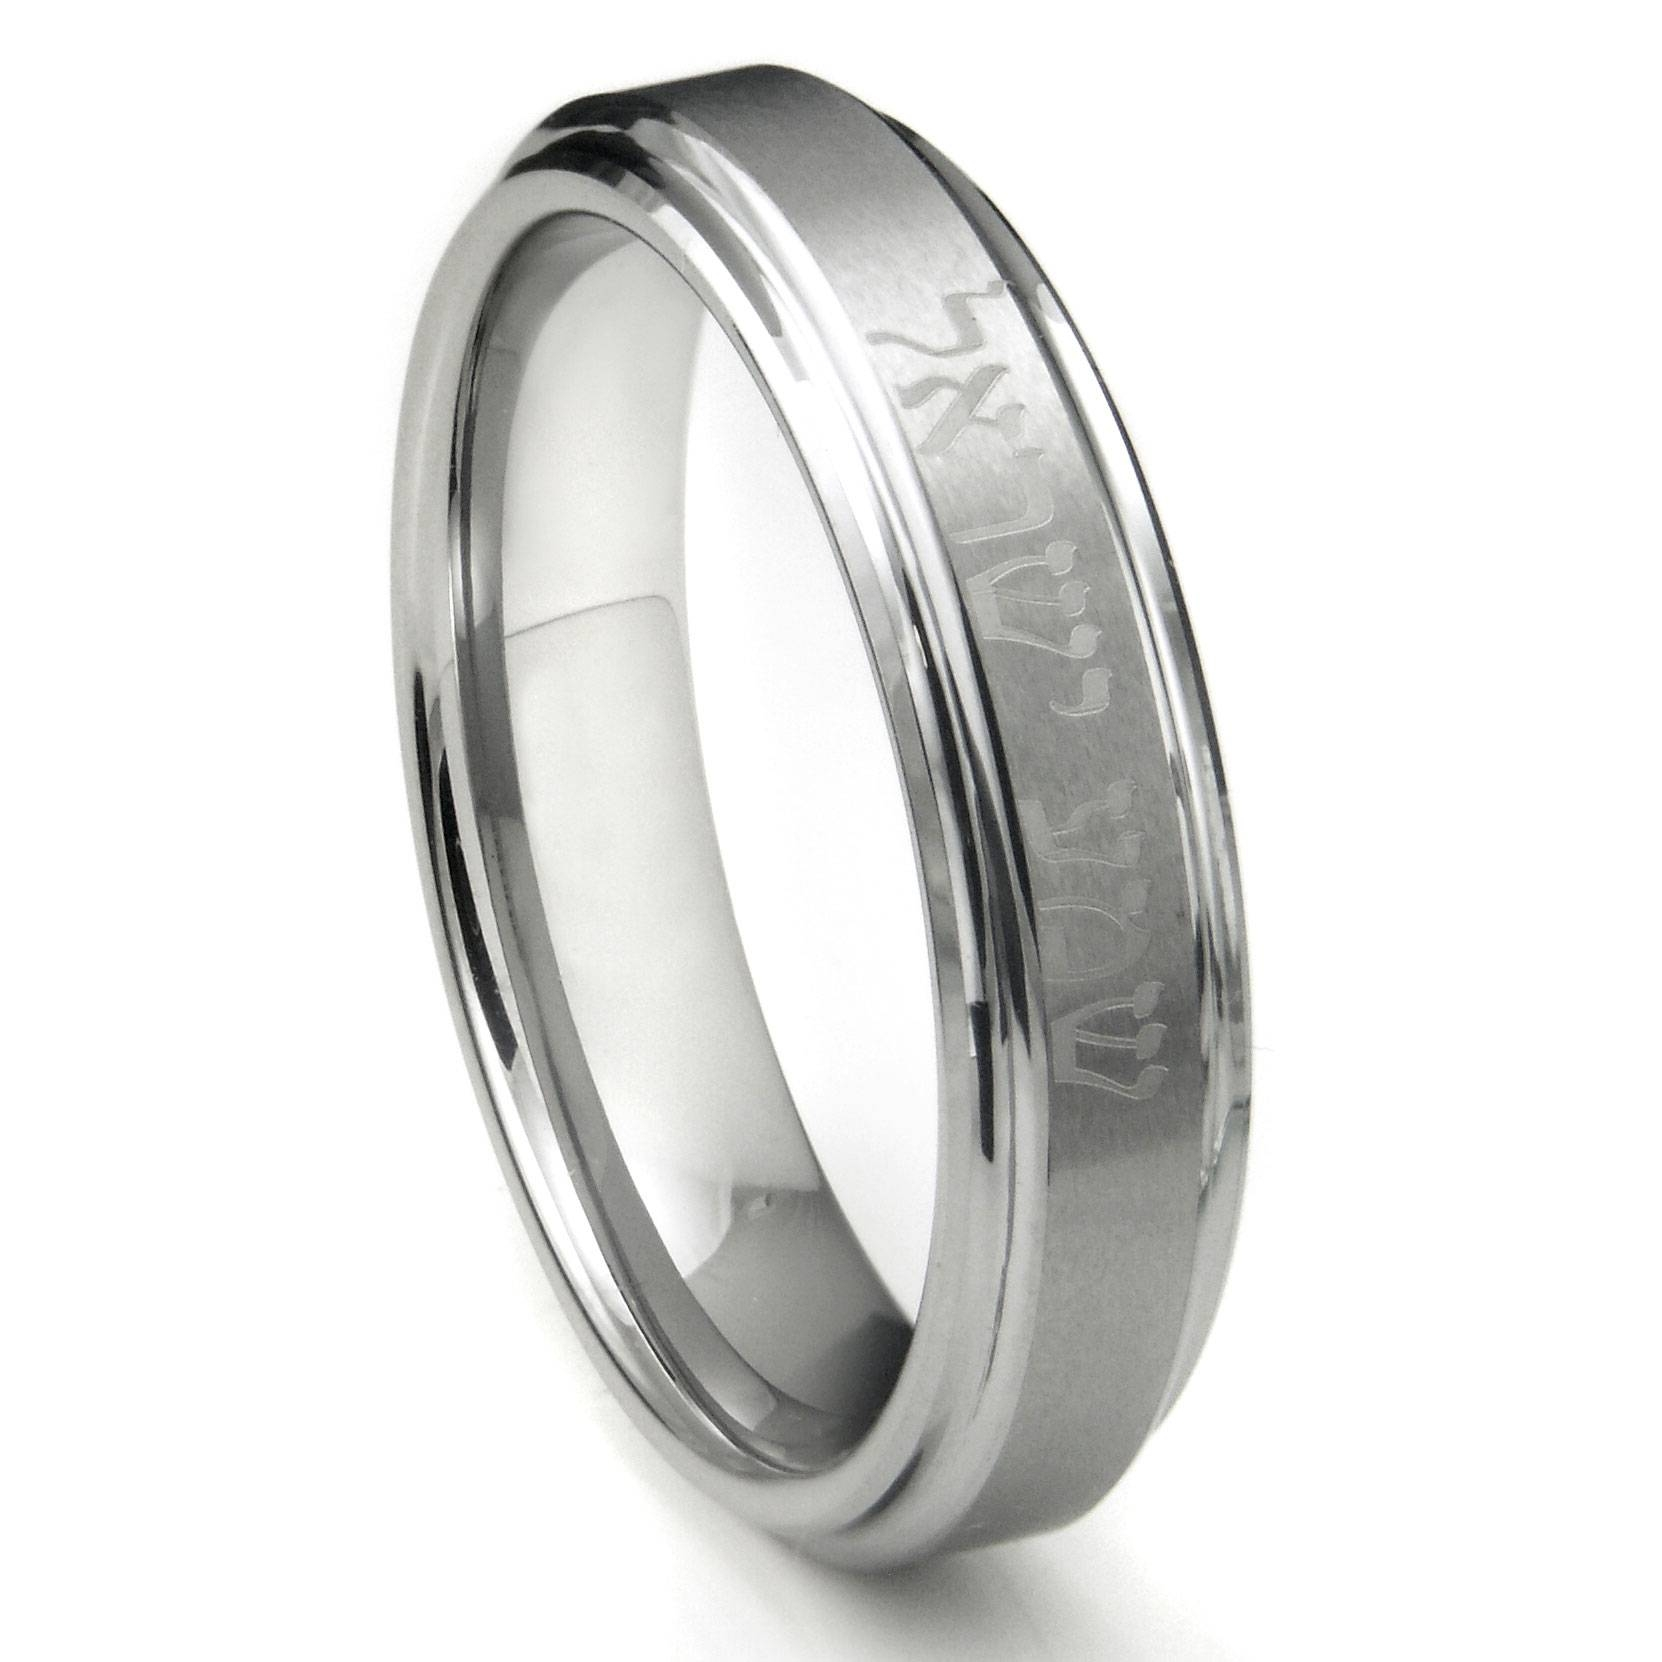 15 Inspirations Of Engravable Mens Wedding Bands